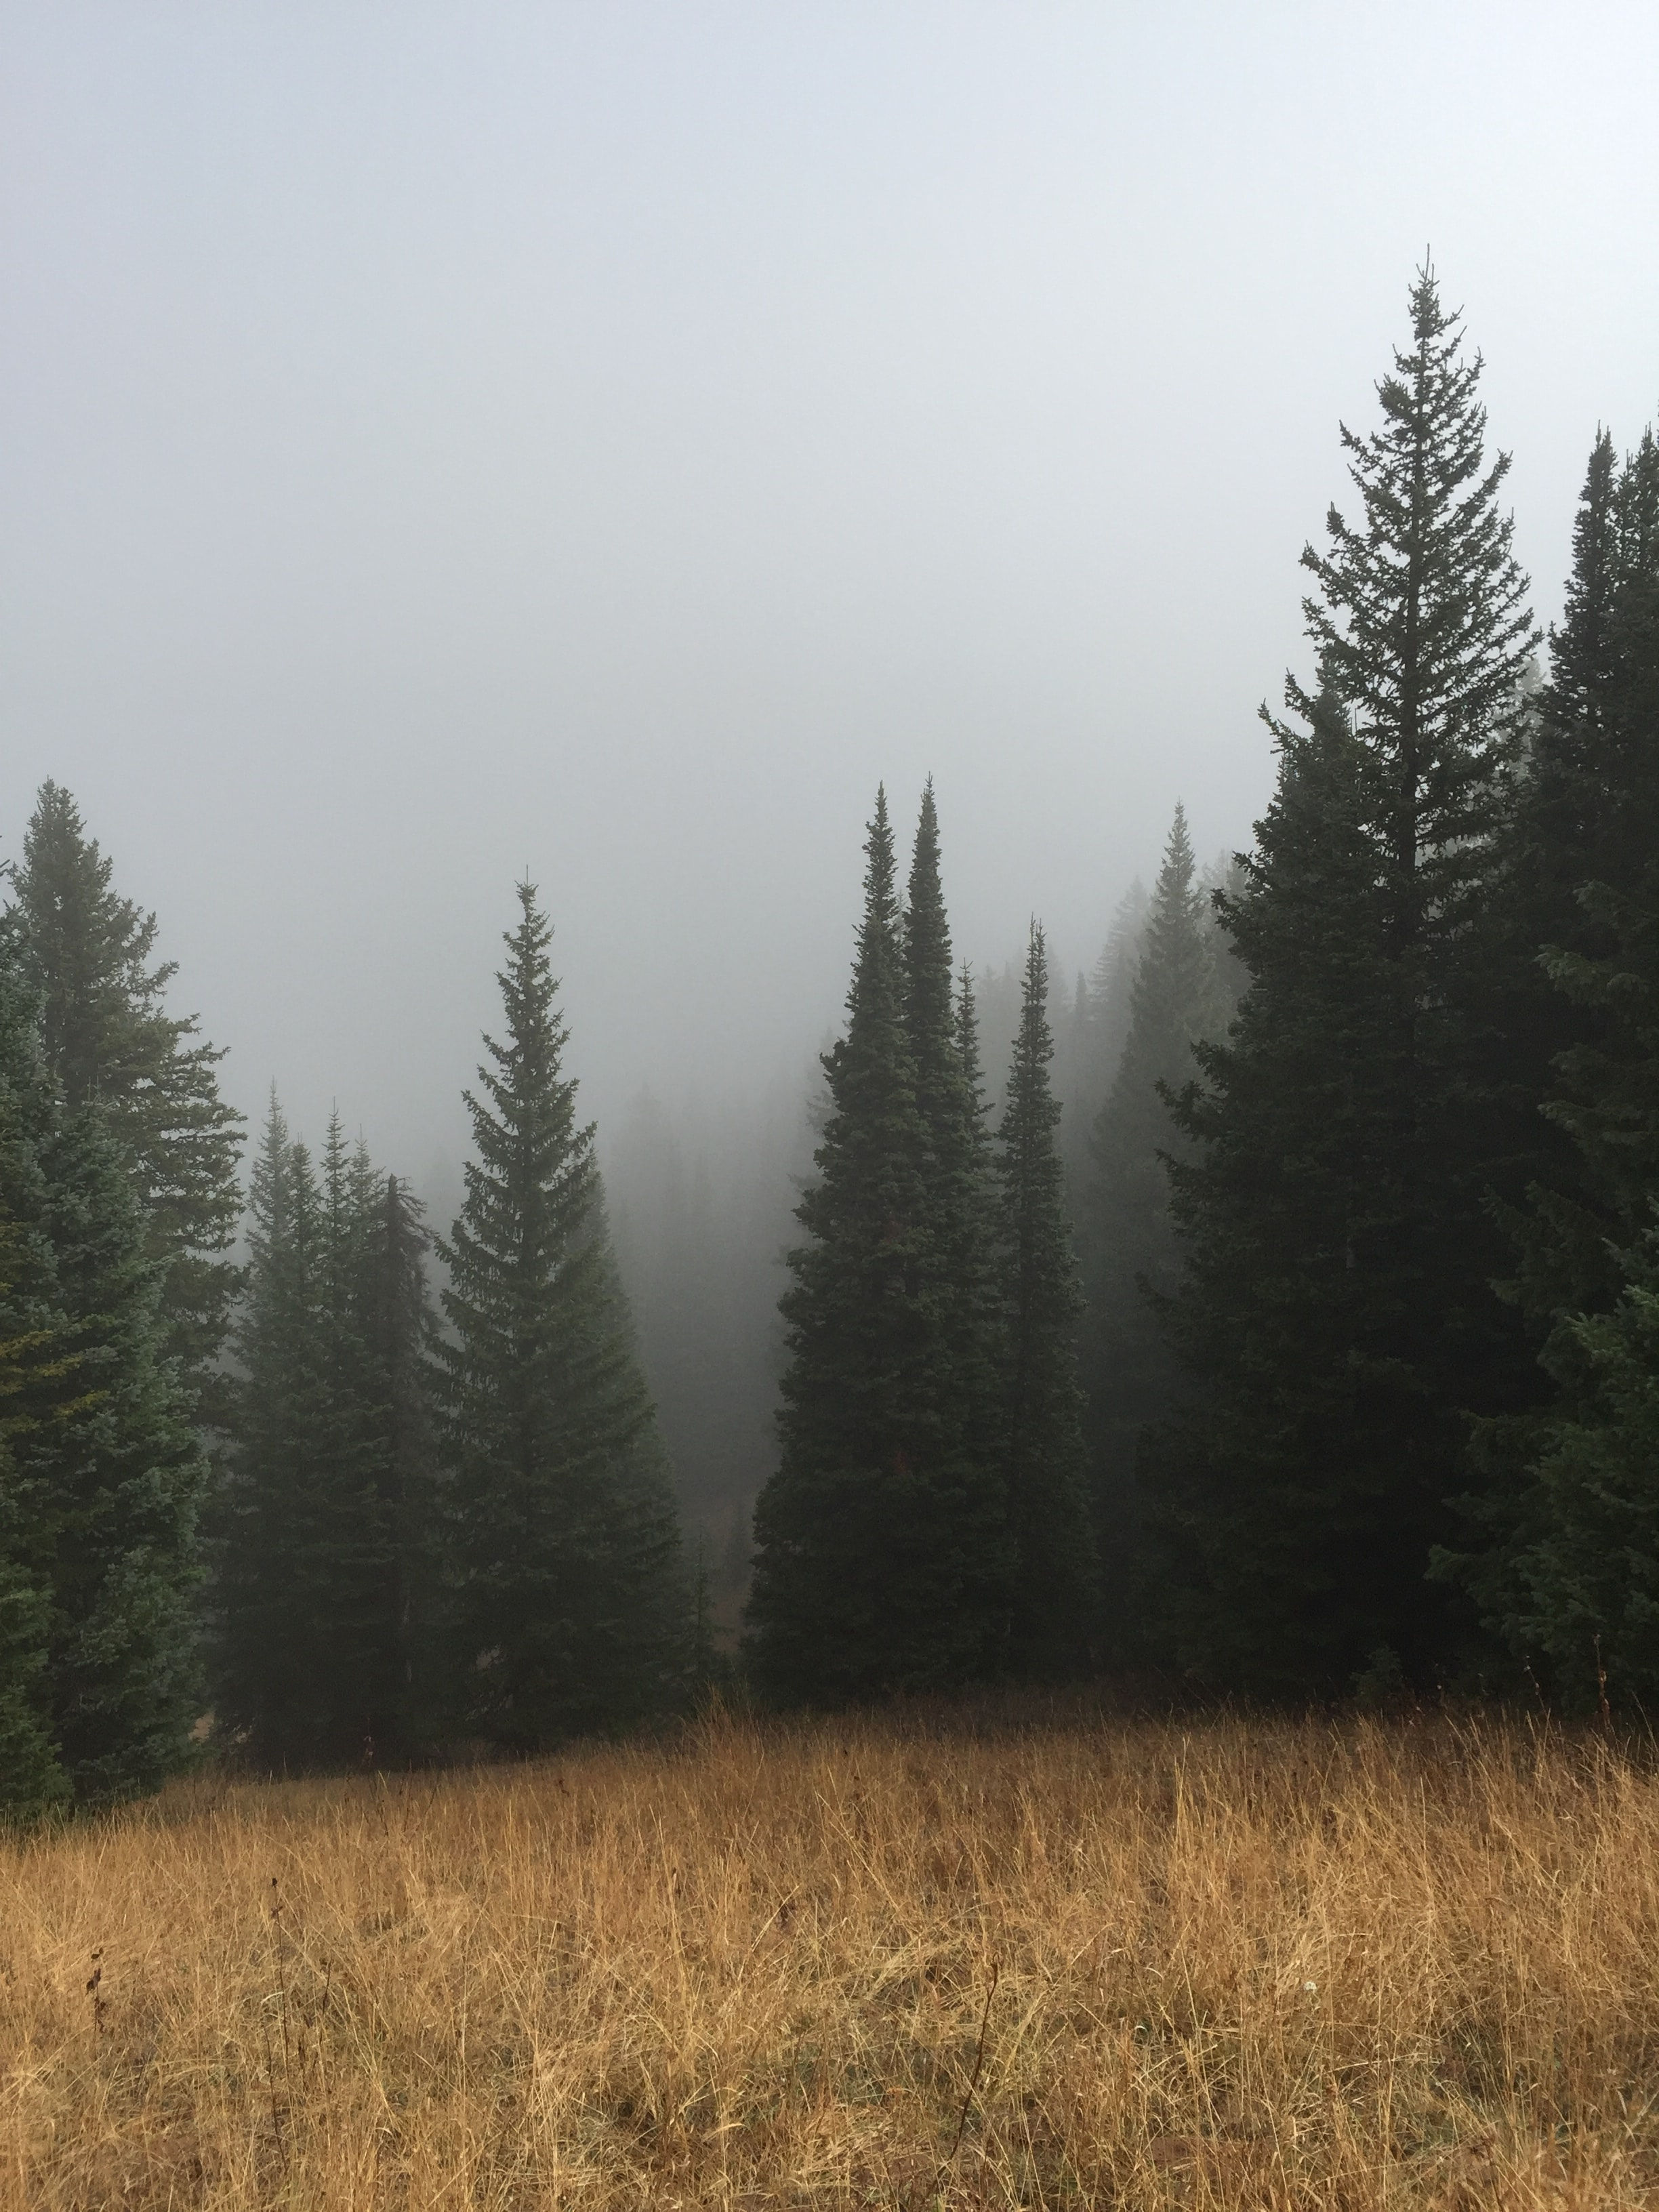 Tree, forest, pine and mist HD photo by Bradley Swenson ...